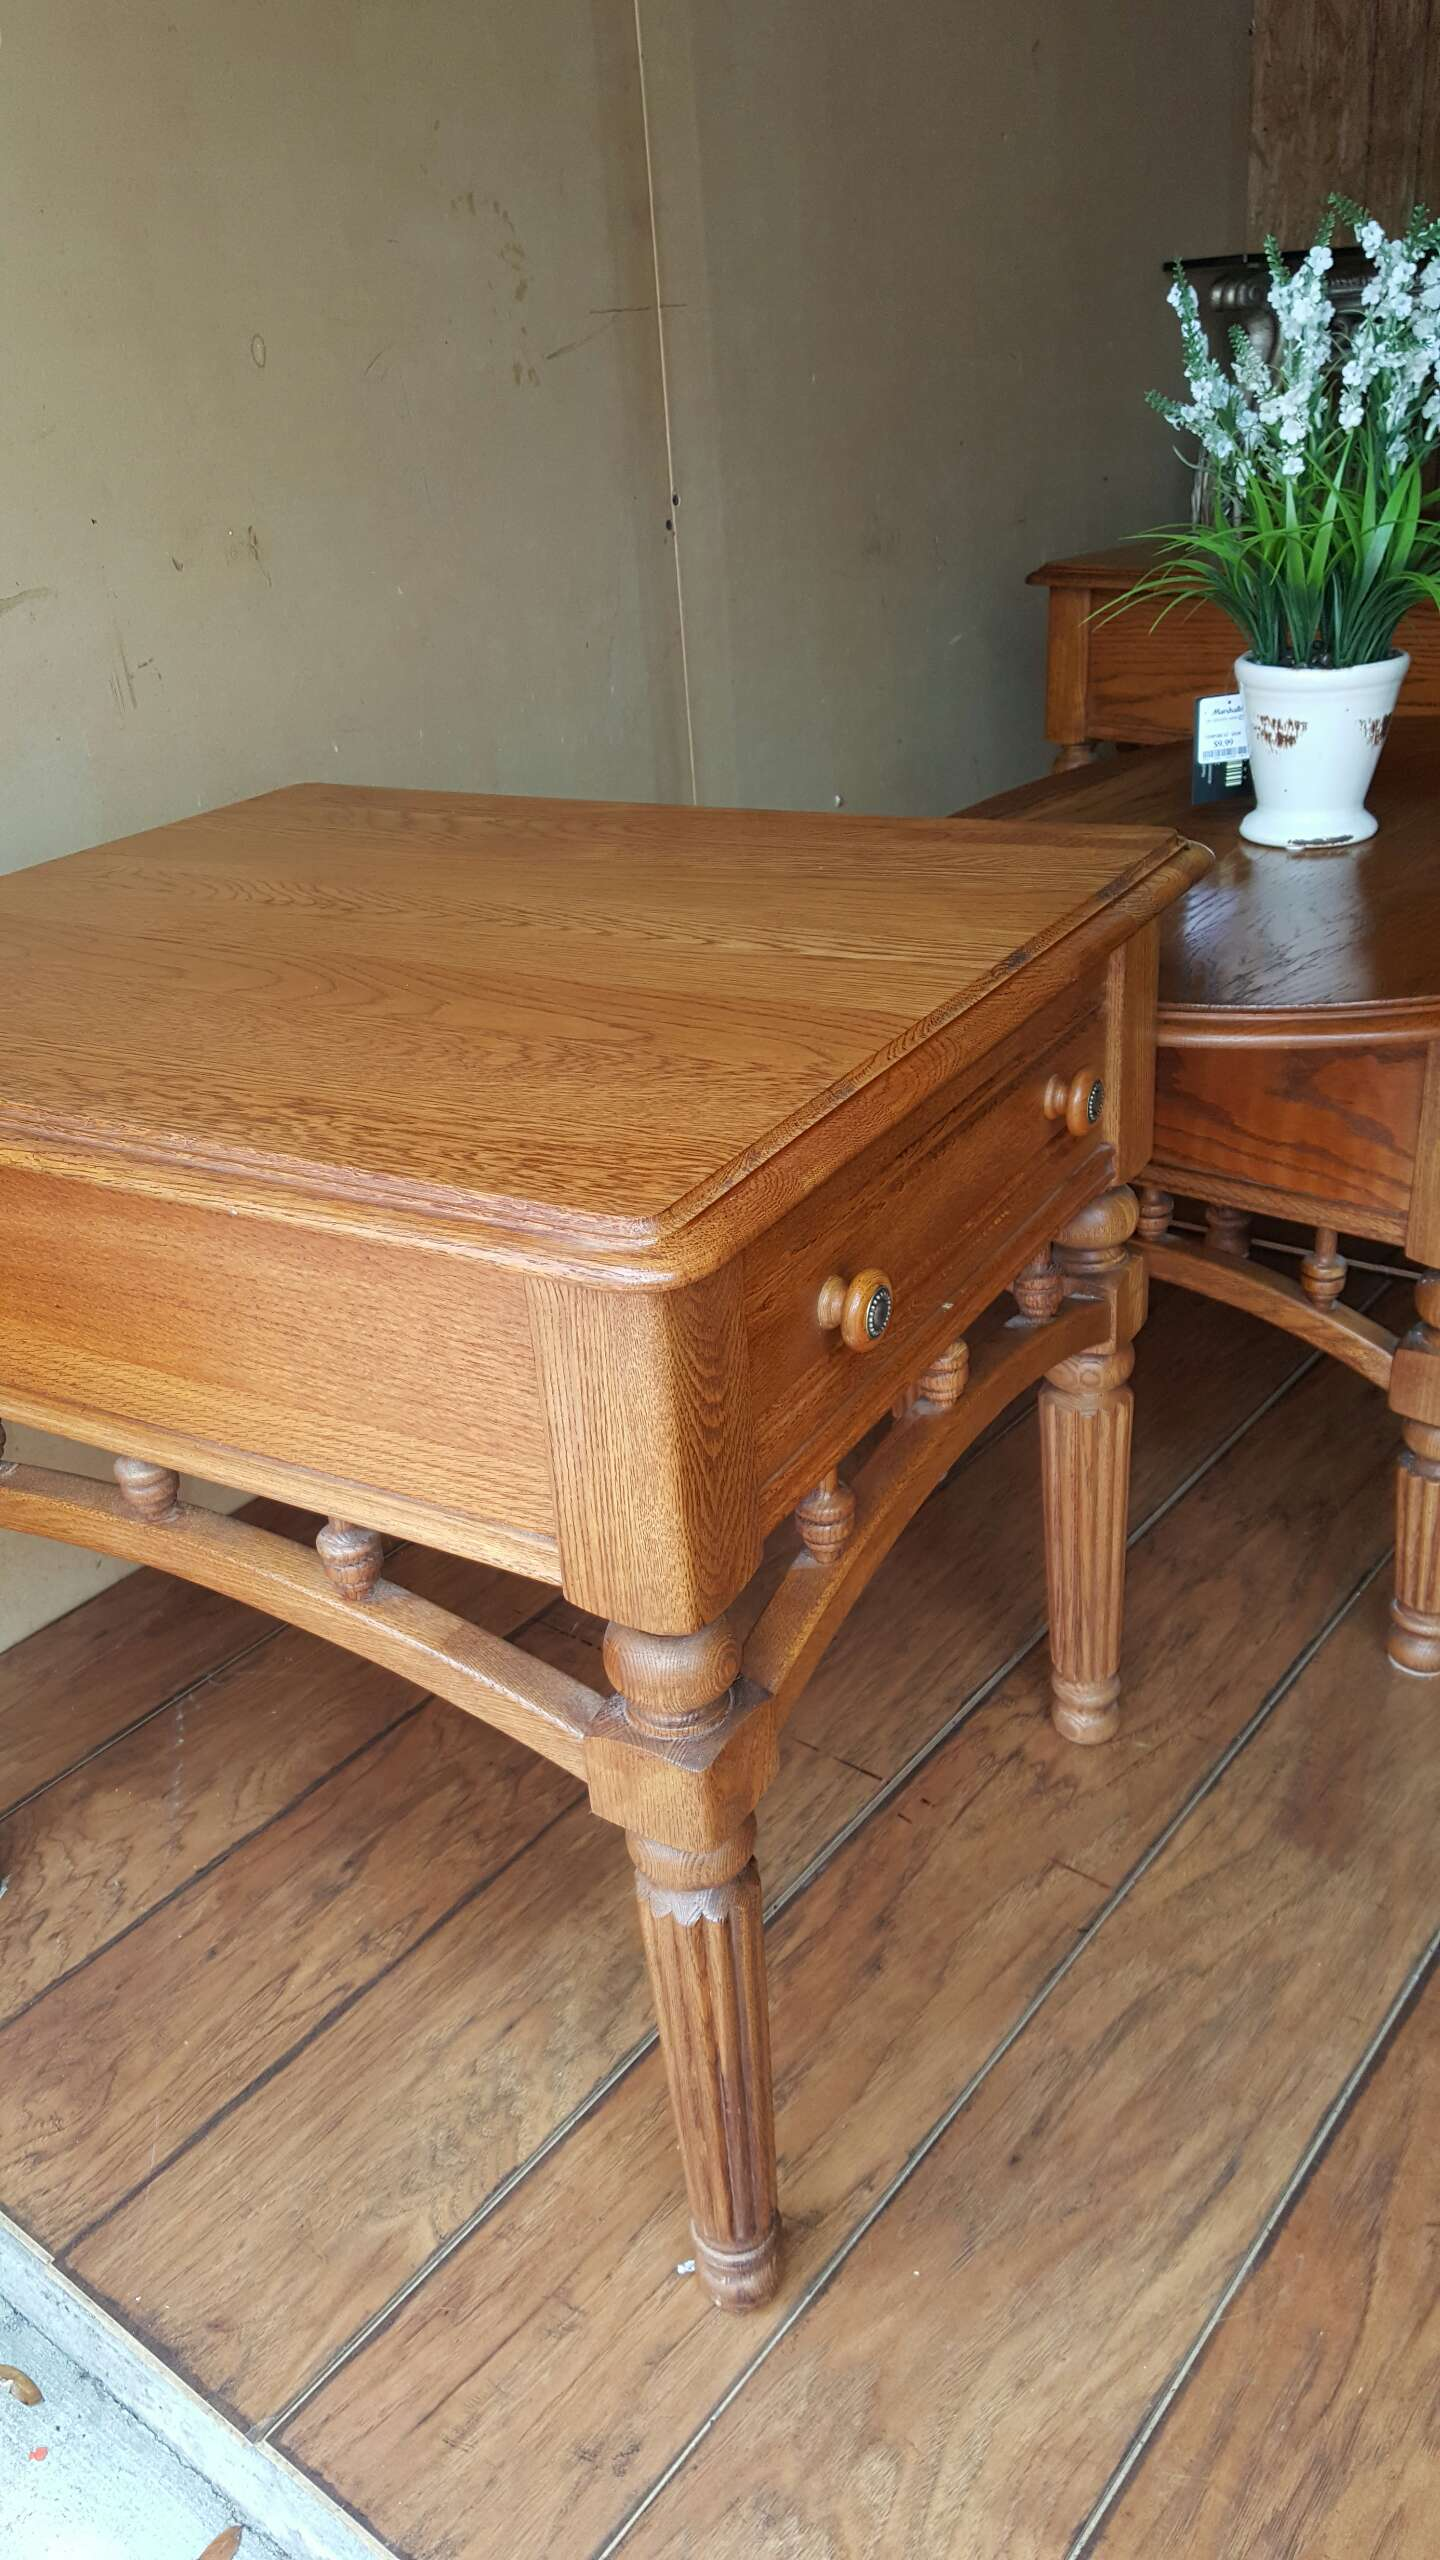 Reduced Coffee Table With 2 Matching End Tables For Sale In Clearwater Fl 5miles Buy And Sell